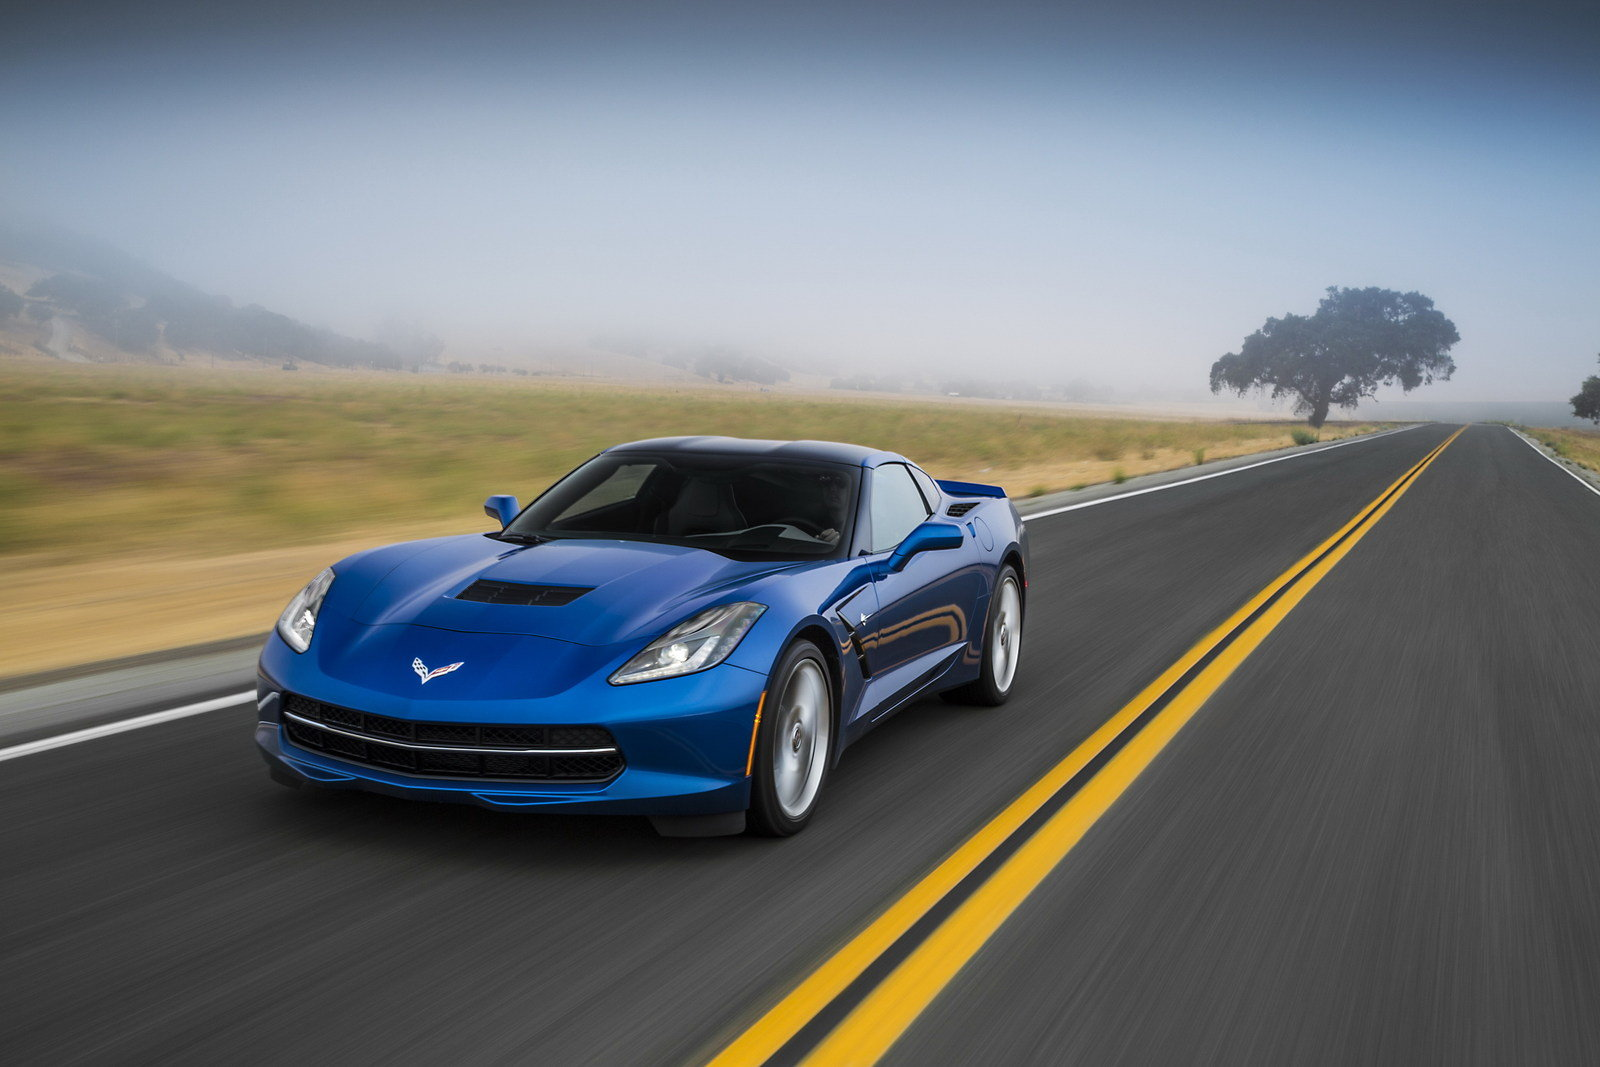 chevrolet corvette stingray picture 526922 car review top speed. Cars Review. Best American Auto & Cars Review